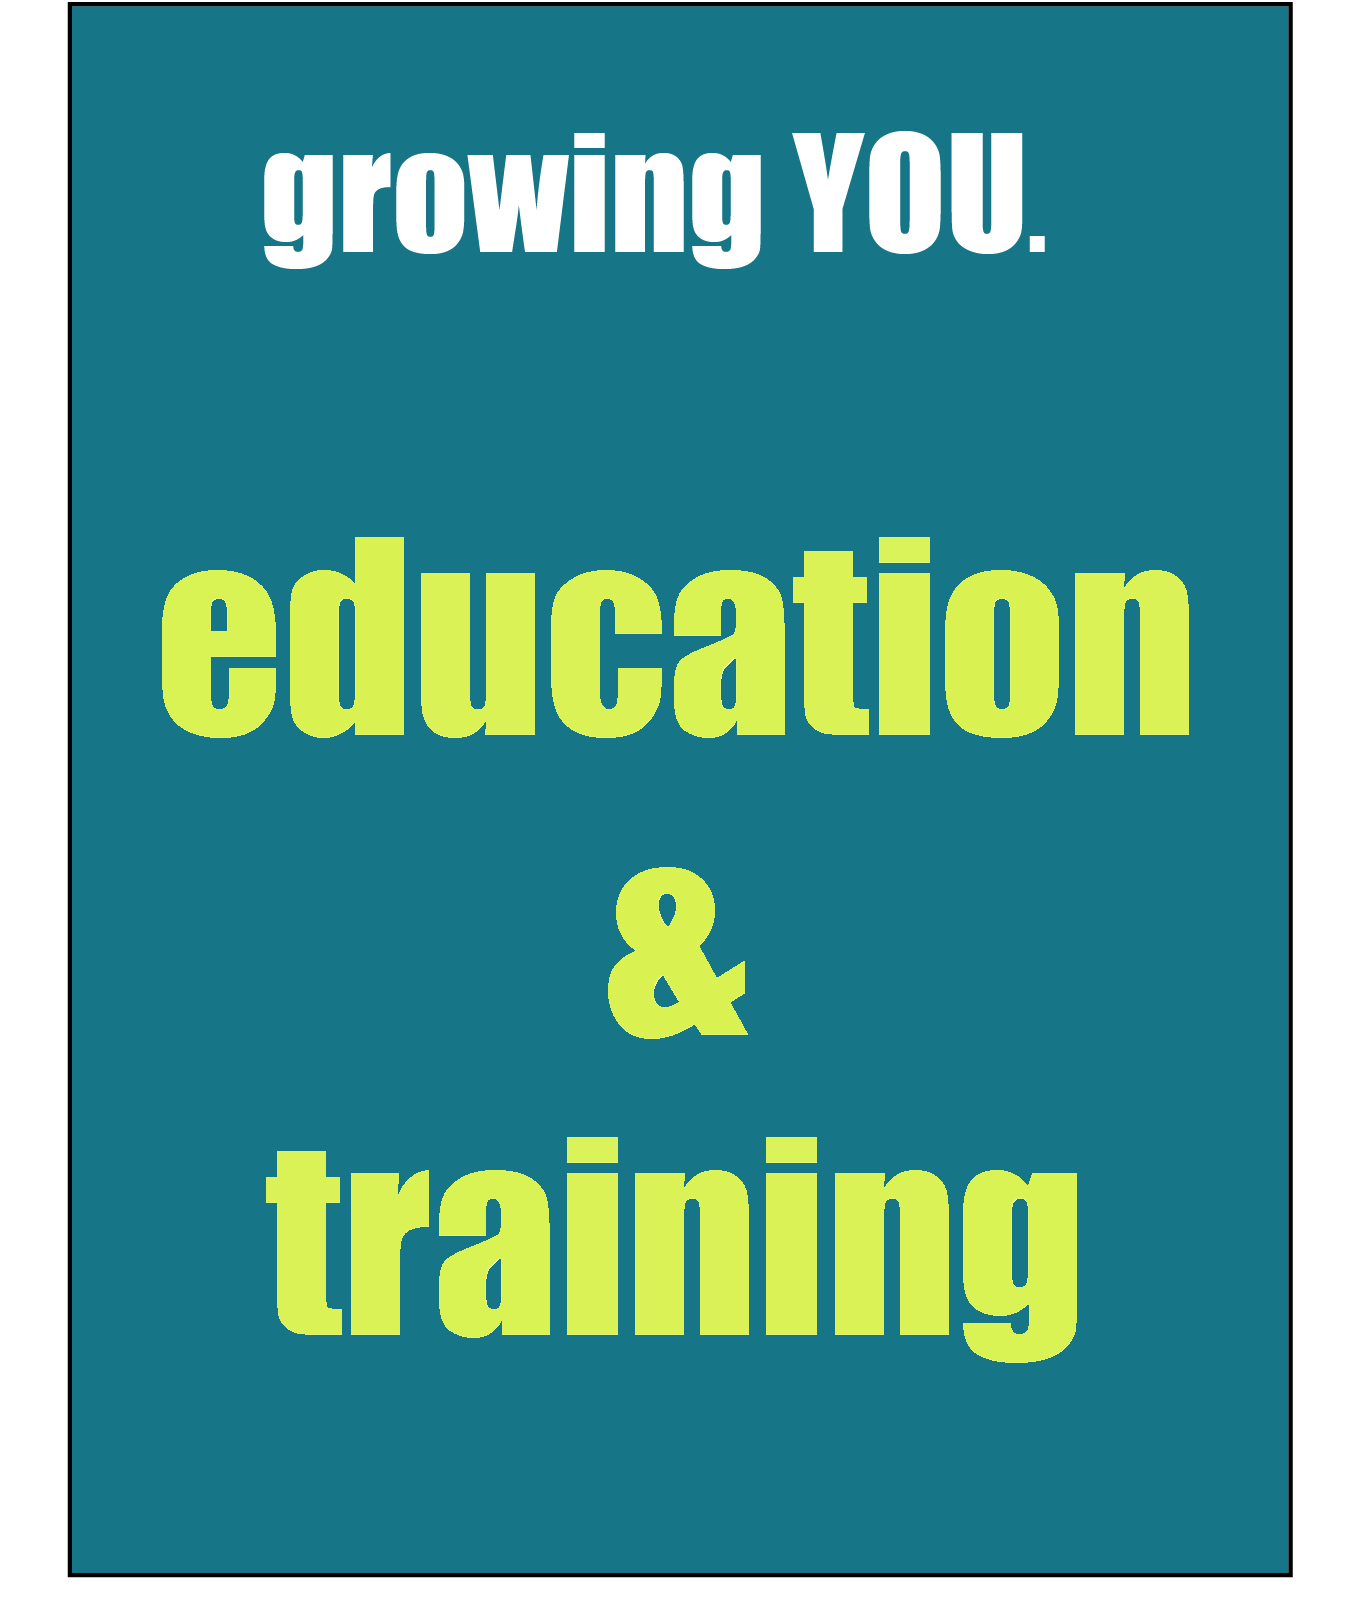 educaton and training